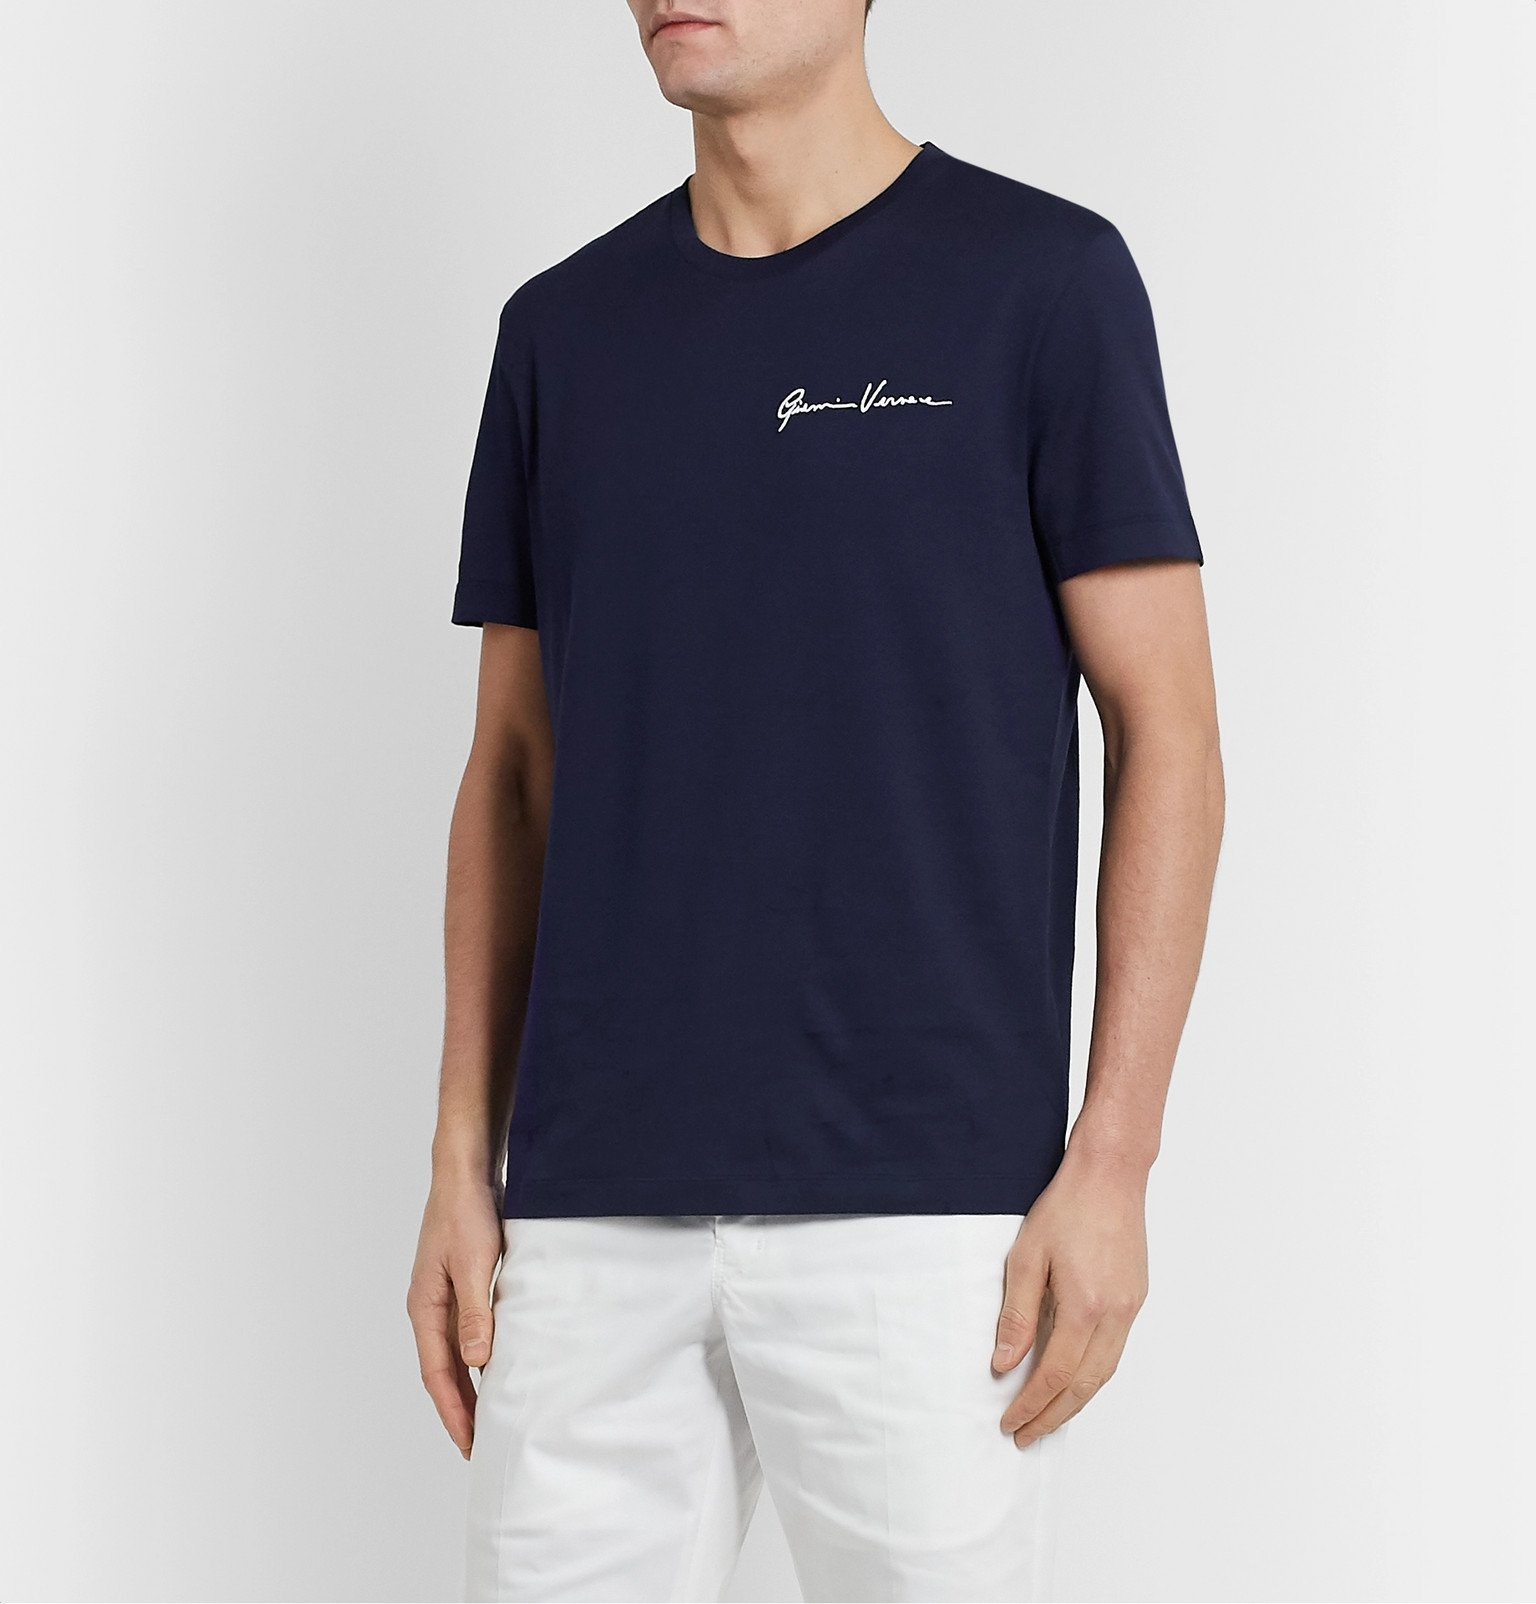 Versace - Logo-Embroidered Cotton-Jersey T-Shirt - Blue